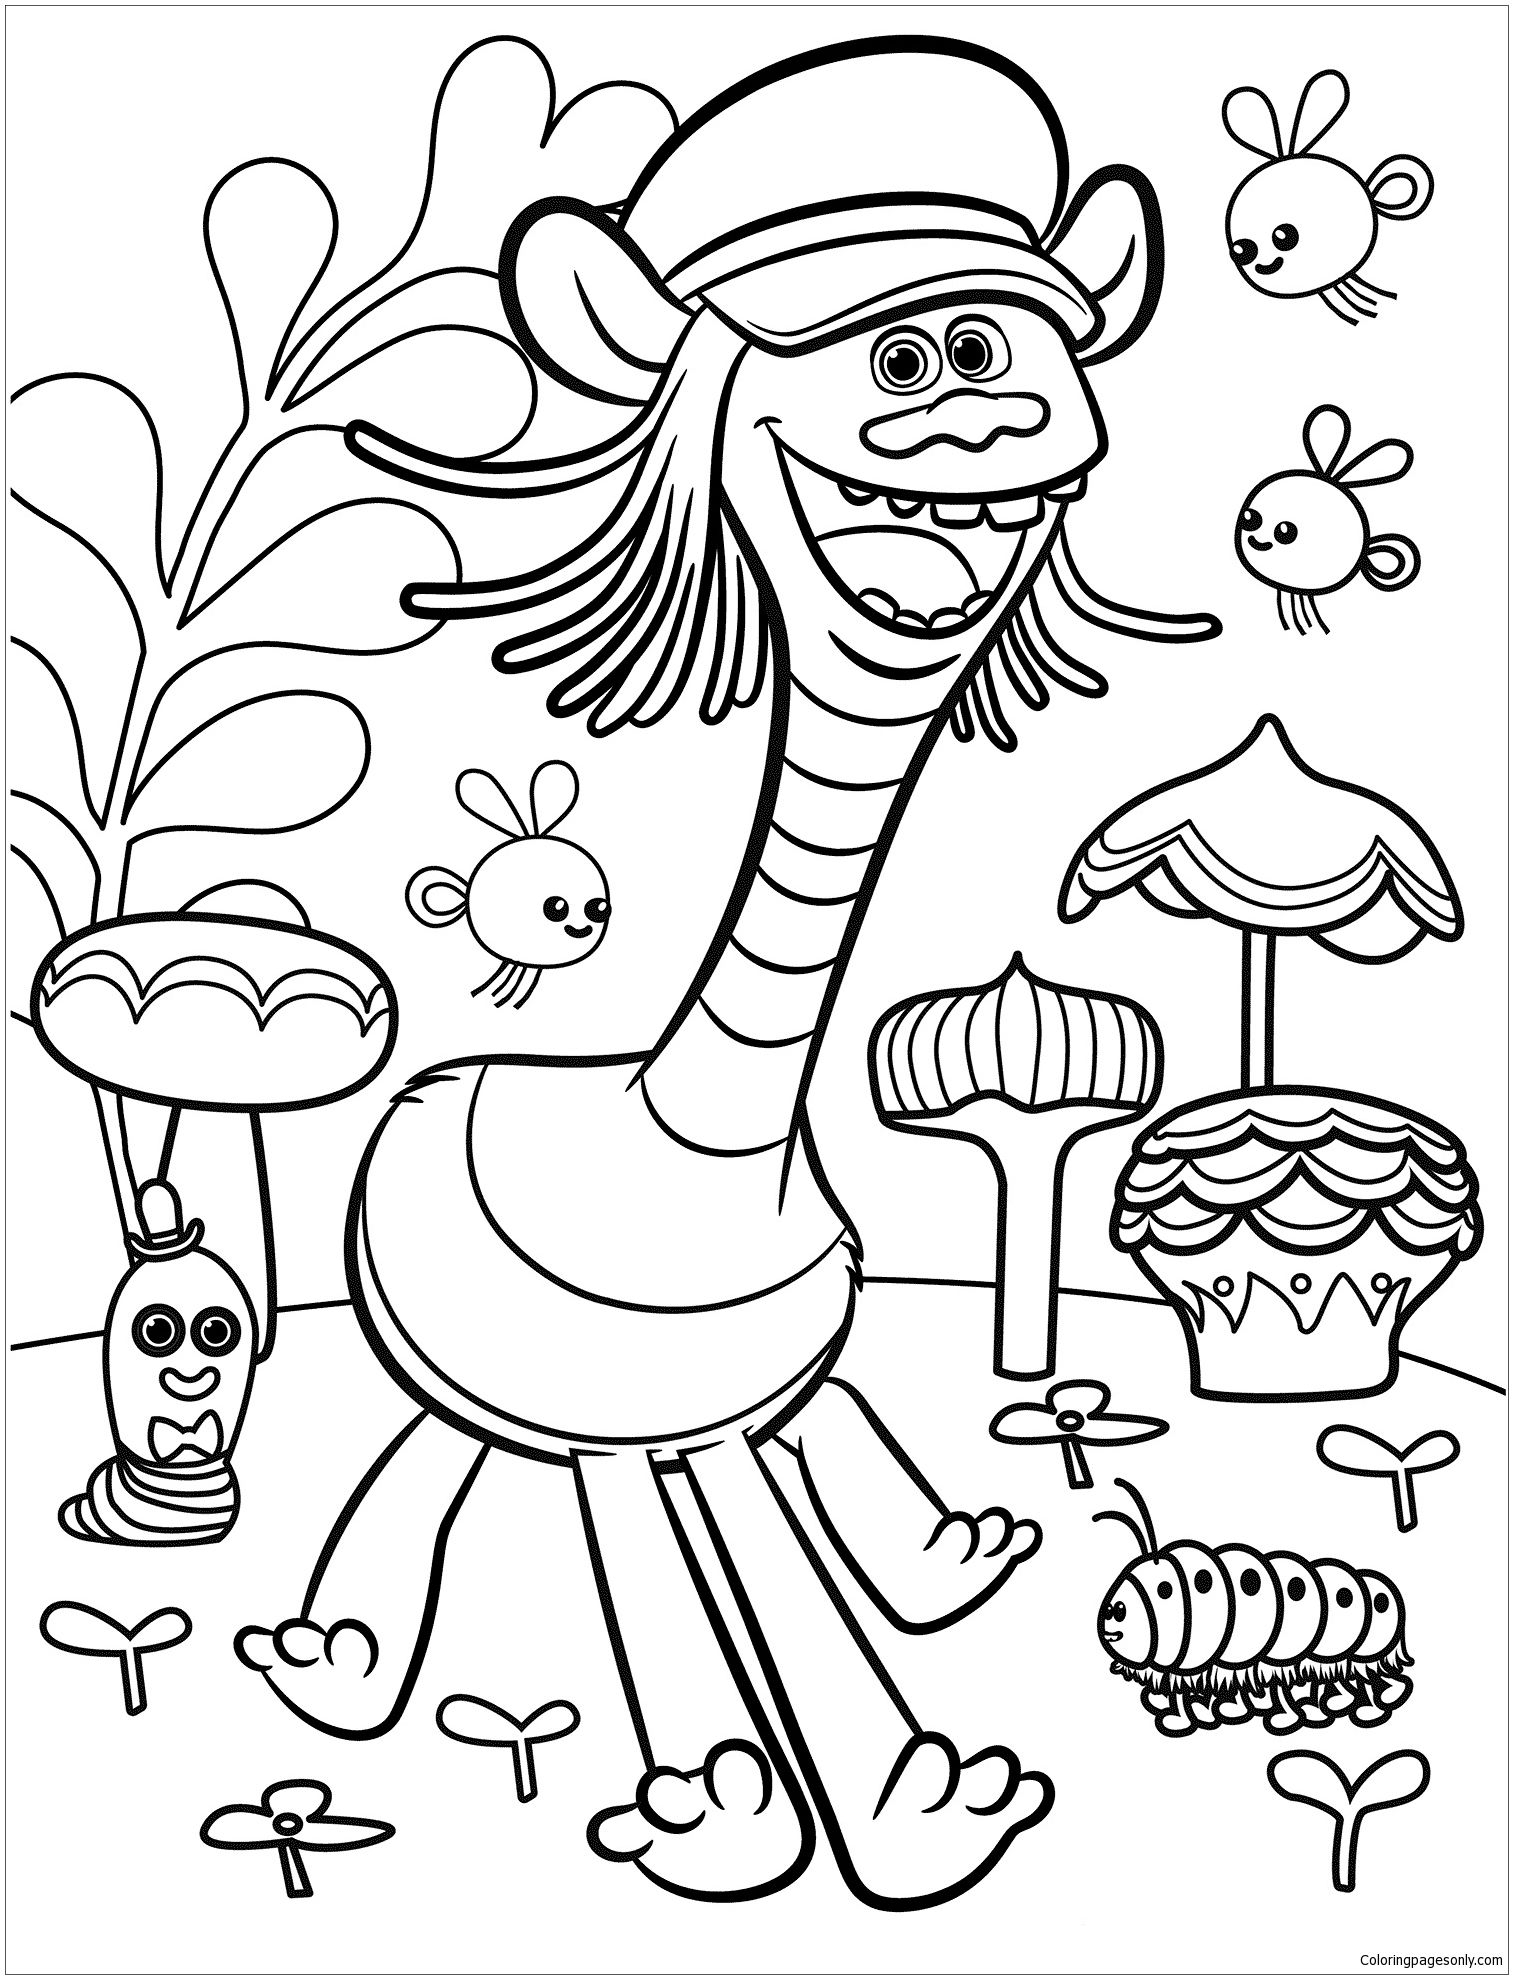 Trolls Movie 1 Coloring Page Free Coloring Pages Online Poppy Coloring Page Coloring Pages Free Coloring Pages